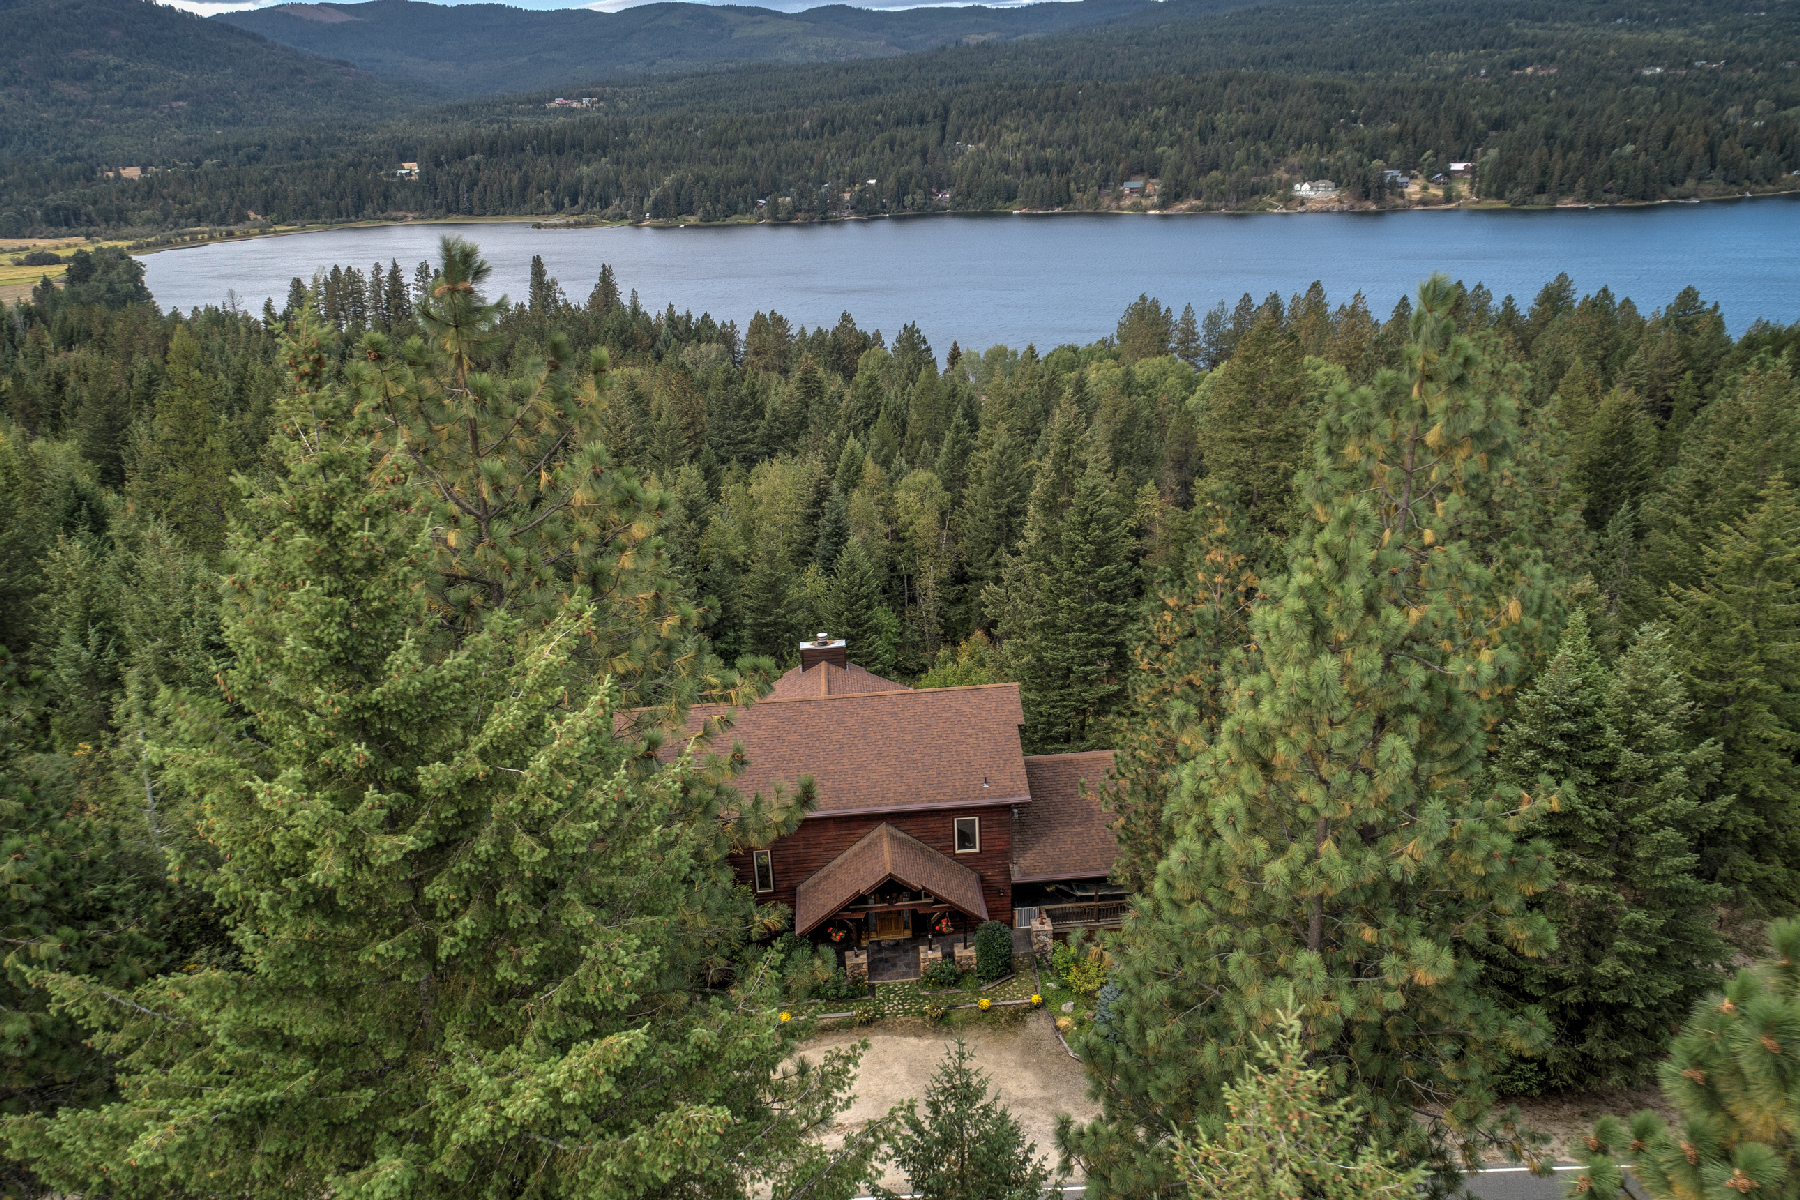 Single Family Homes for Sale at Majestic Mountain and Lake View Home 382 Blacktail Road Cocolalla, Idaho 83813 United States